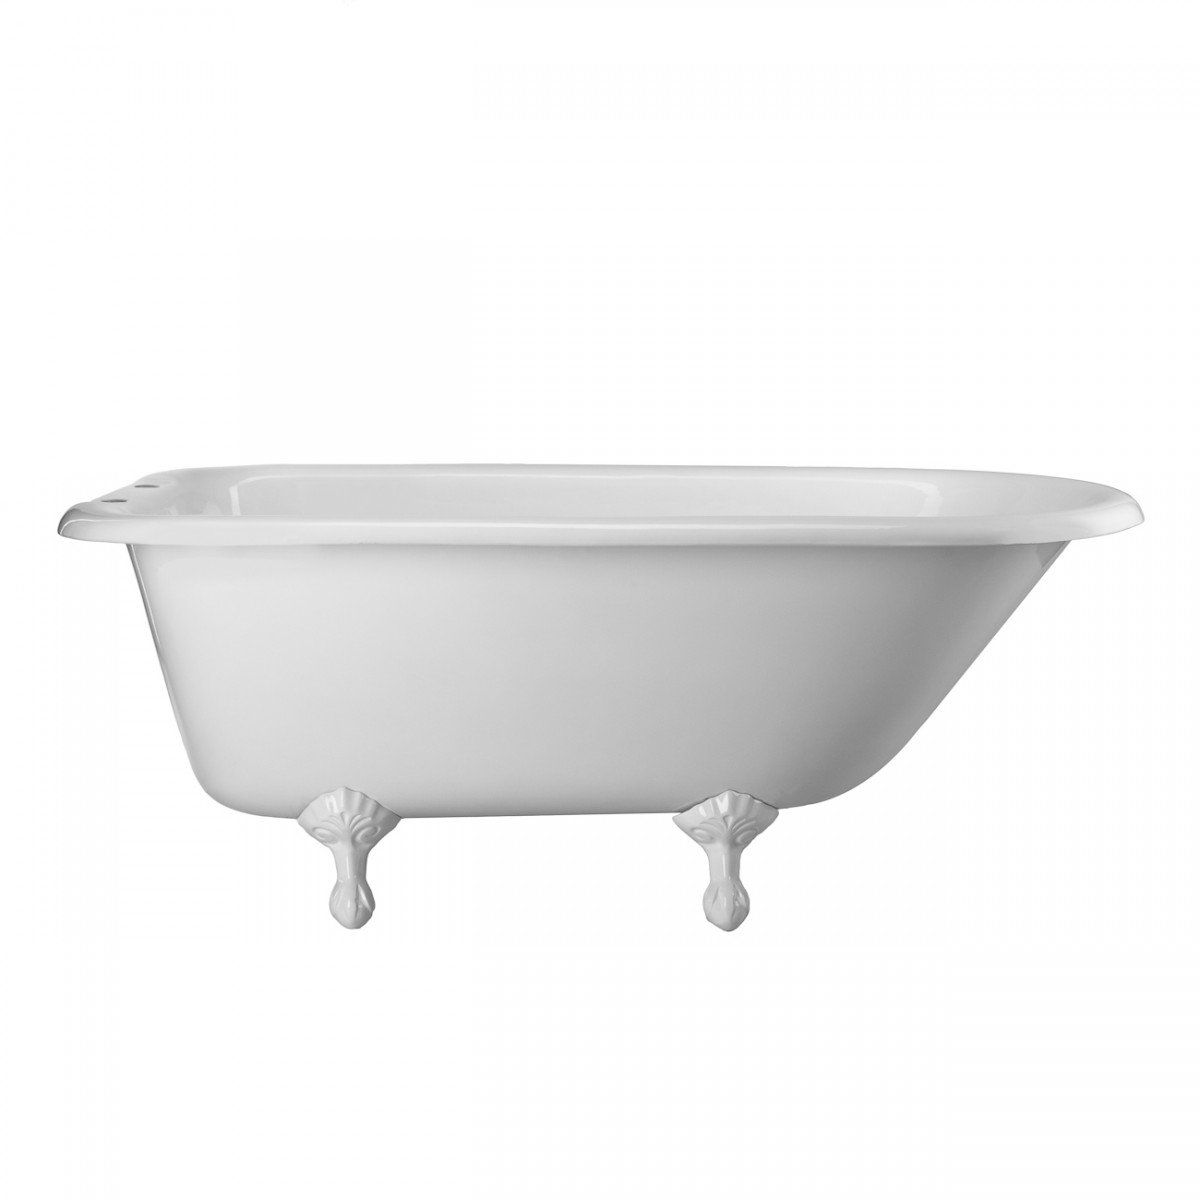 Heritage Cast Iron Classic Clawfoot Tub Rim Faucet Drillings